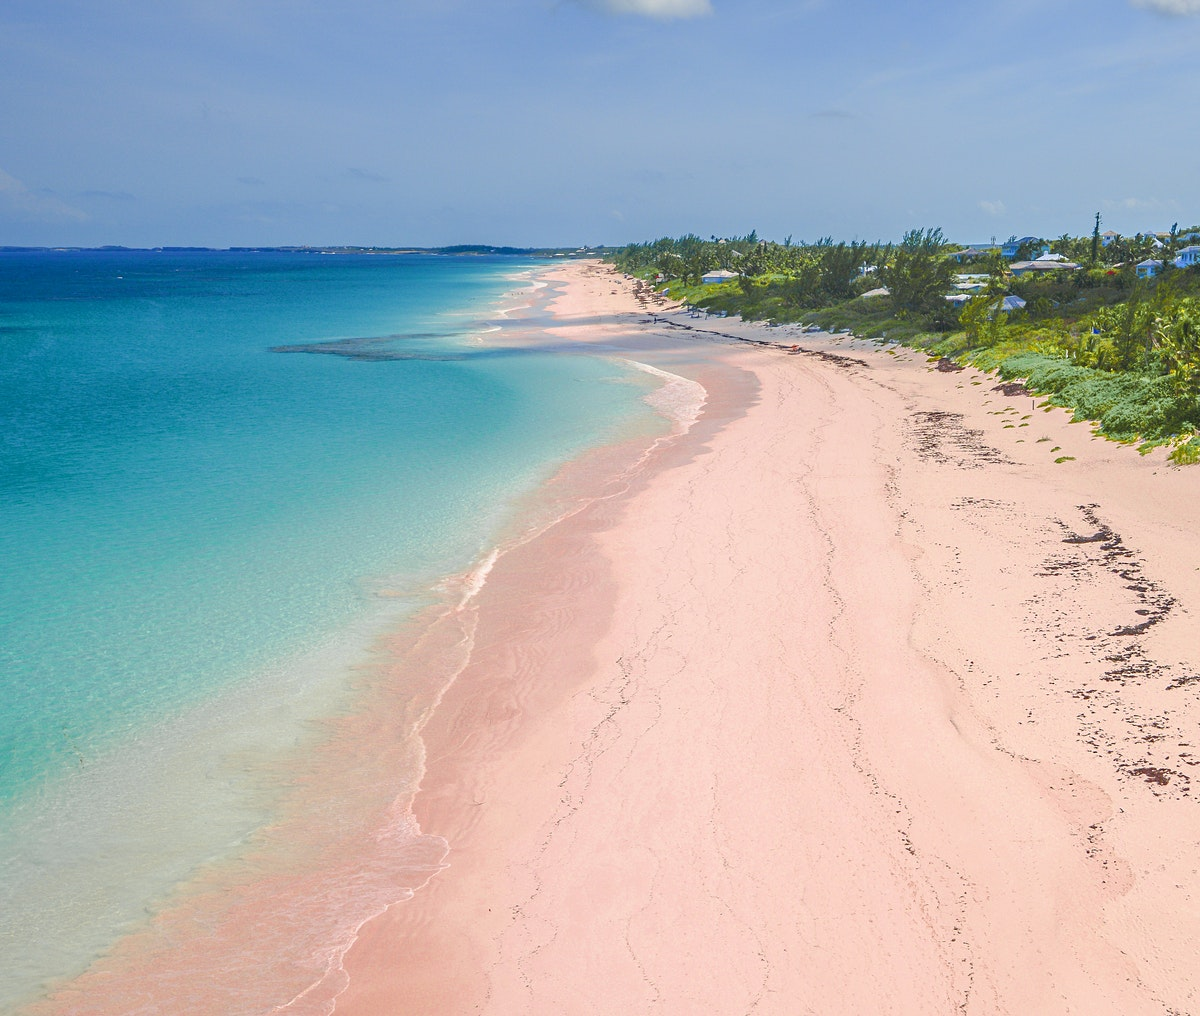 Bahamas Beach: Out Islands, The Bahamas - Lonely